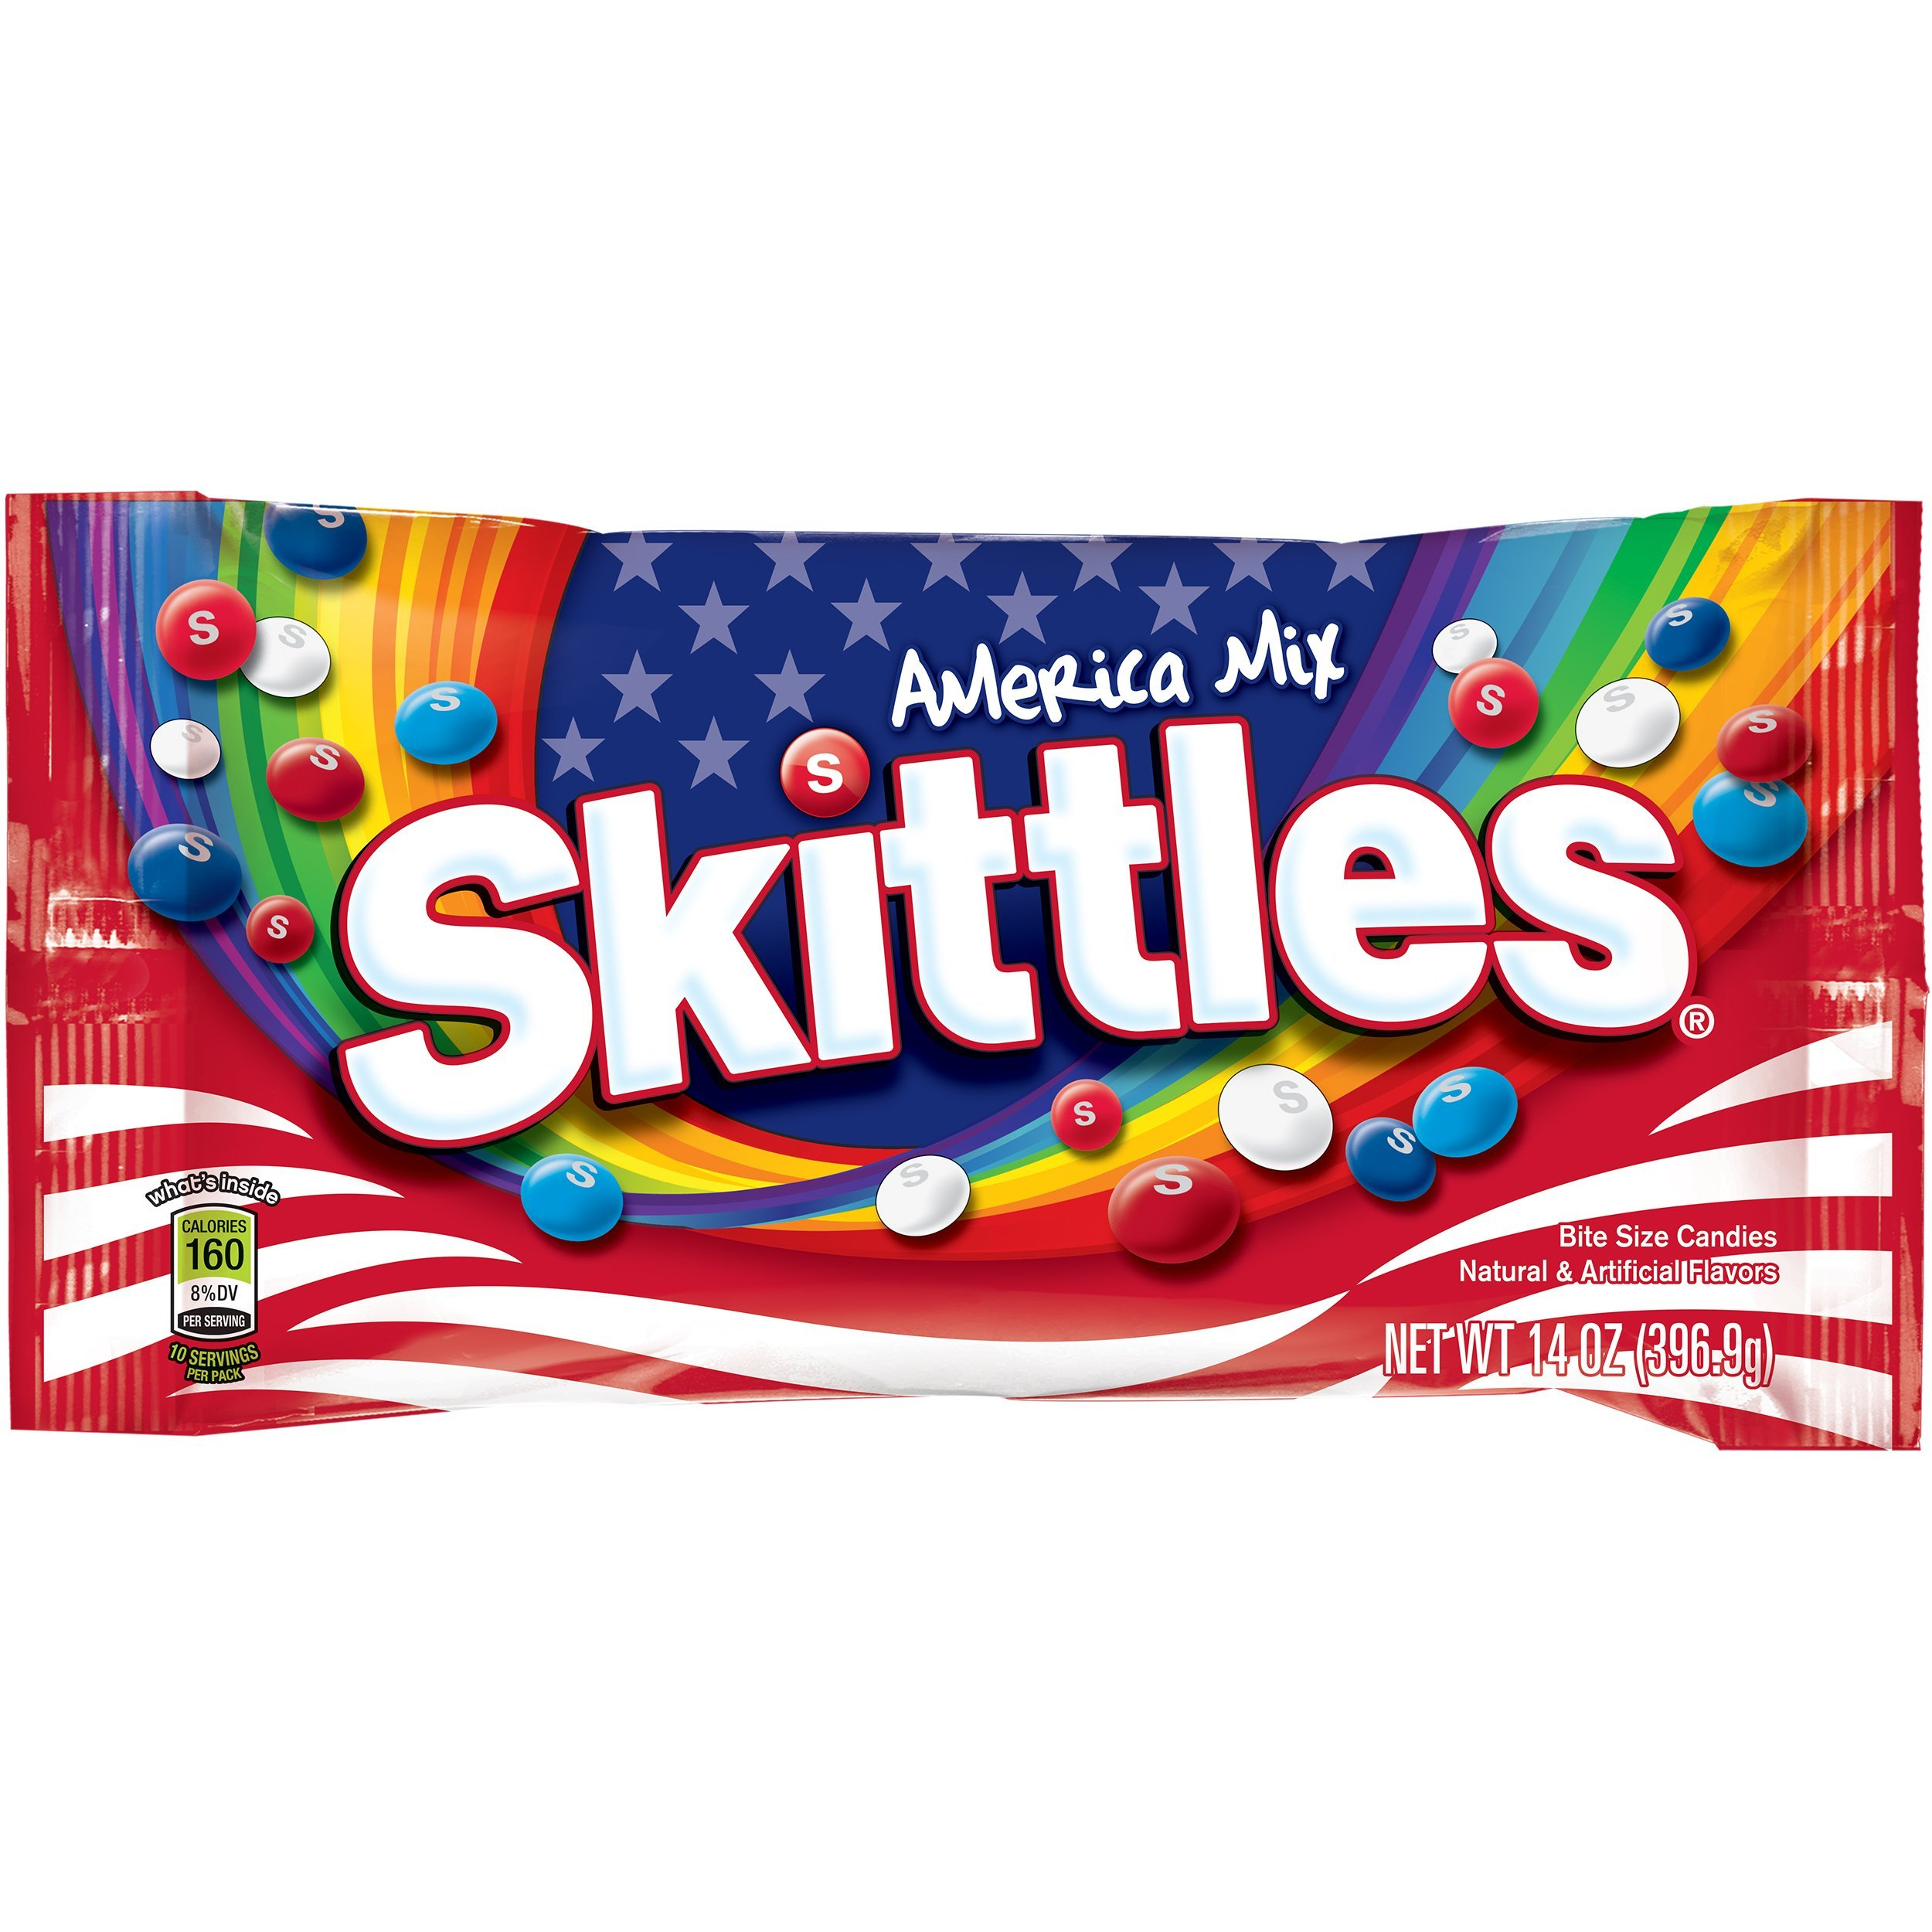 Skittles 4th of July Candy America Mix, 14-Ounce Bag (Pack of 12)